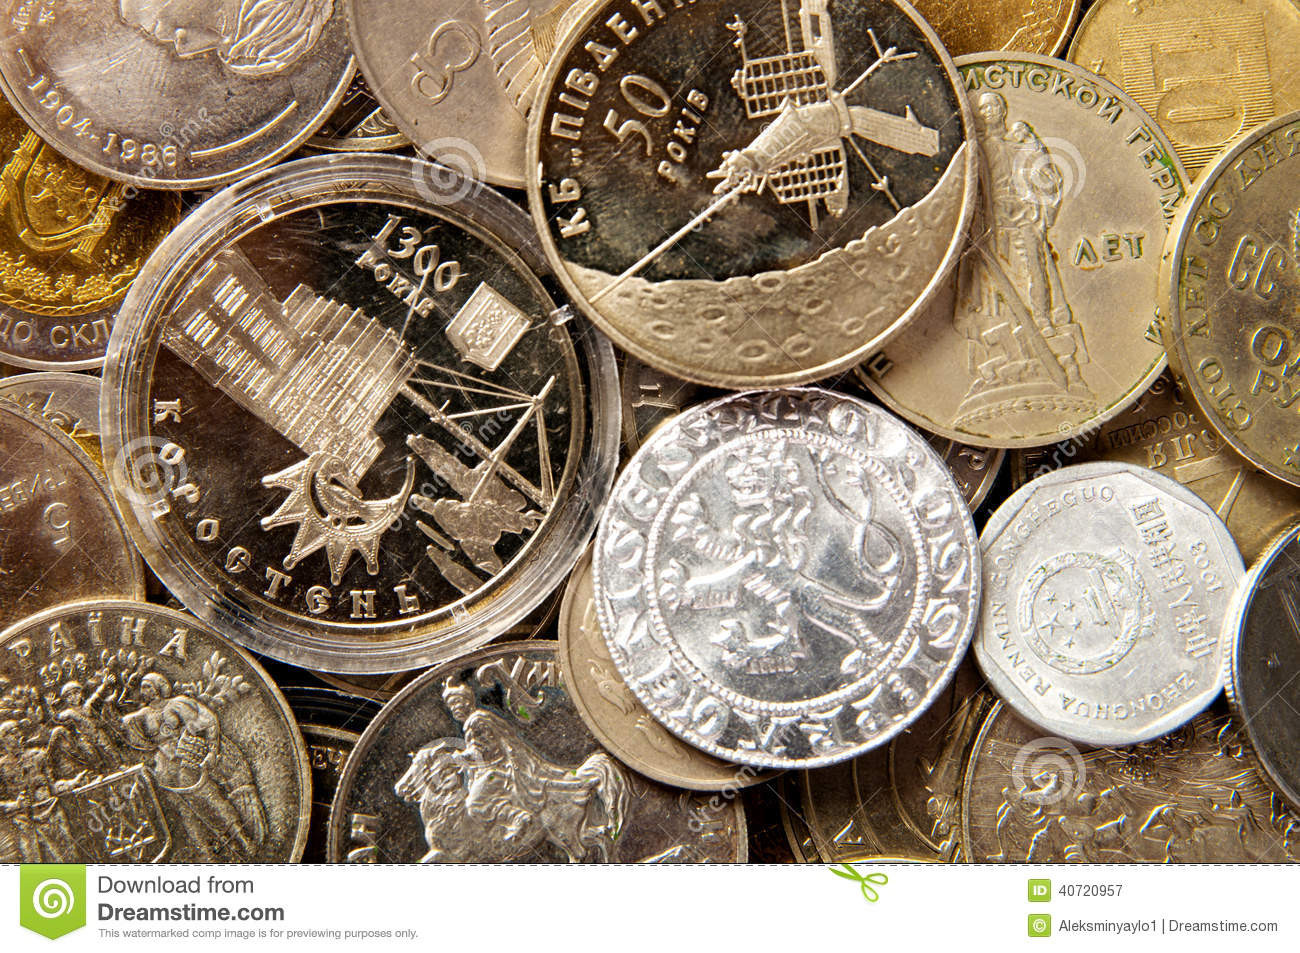 Quarter Collection Luxury Coins Different Countries Coin Collection Stock Image Of Contemporary 50 Photos Quarter Collection